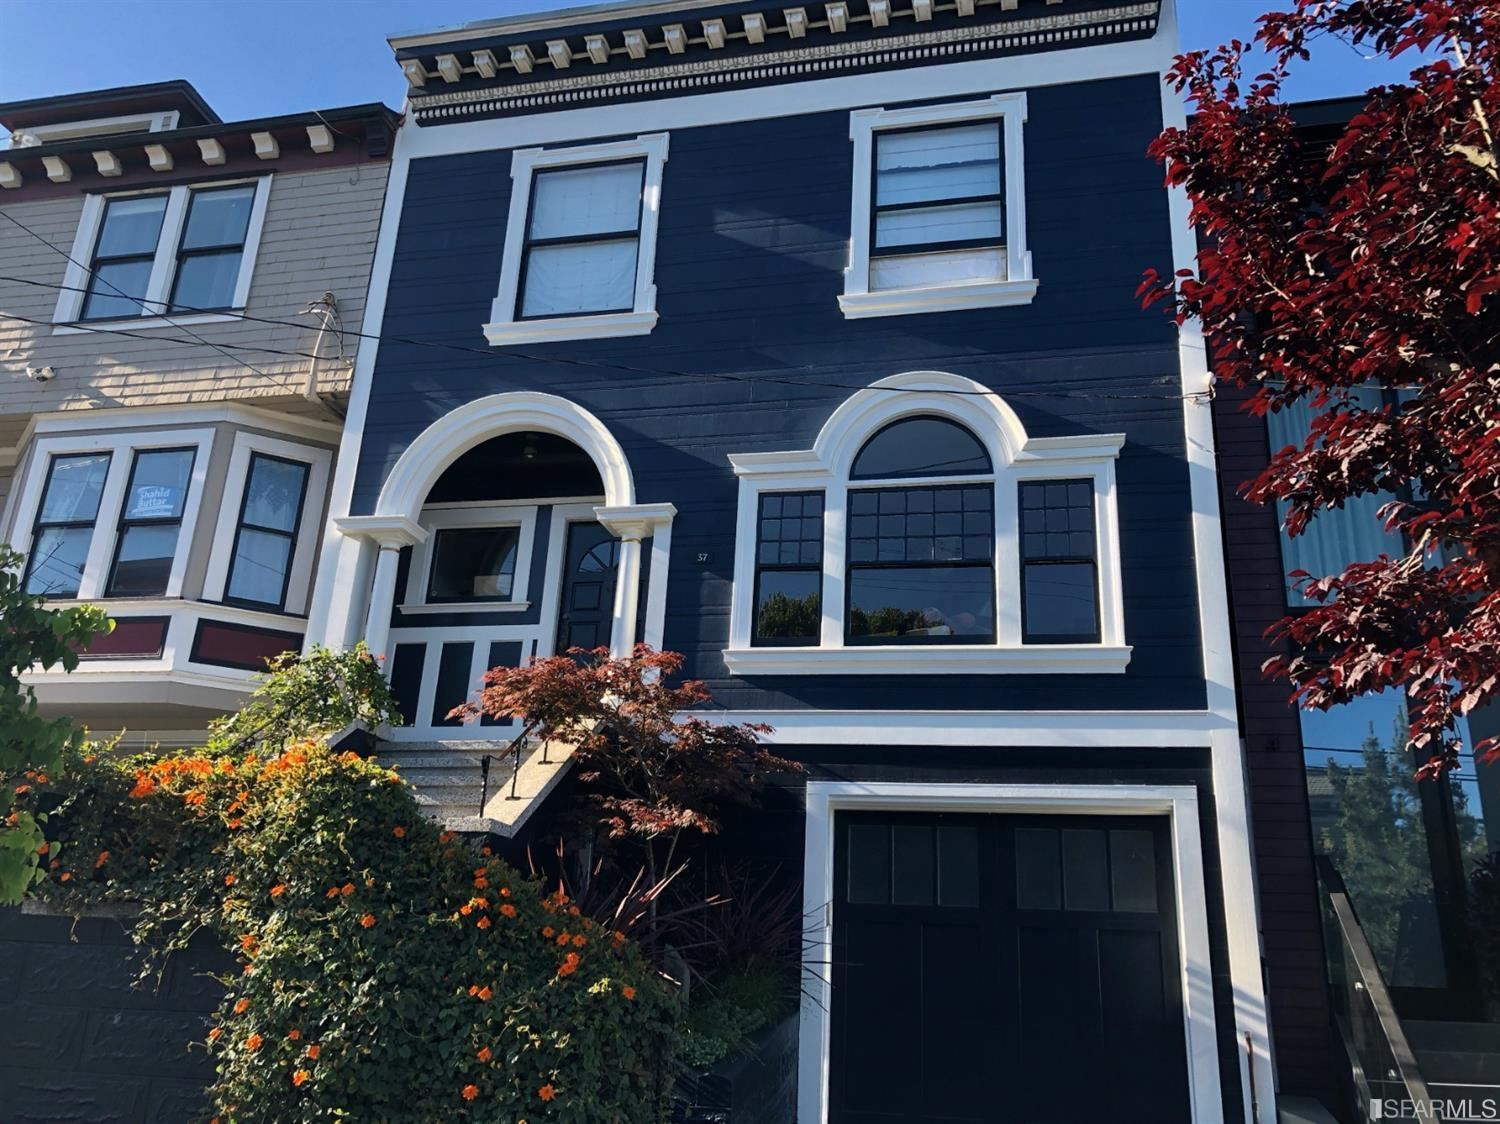 37 Clipper Street, San Francisco, CA 94114 - #: 499596